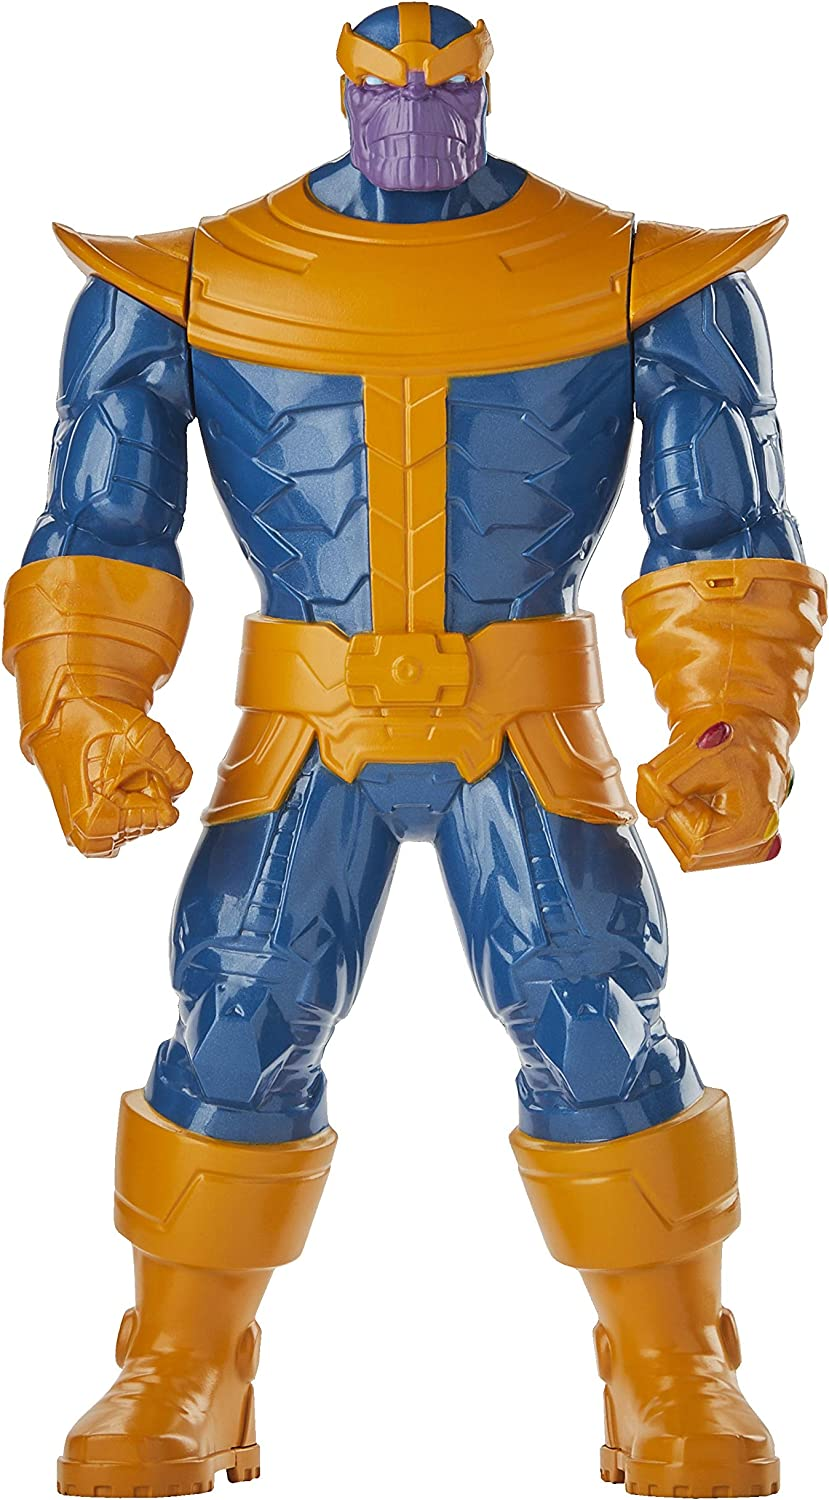 Marvel Thanos Toy 9.5-inch Scale Collectible Super Hero Action Figure, Toys for Kids Ages 4 and Up